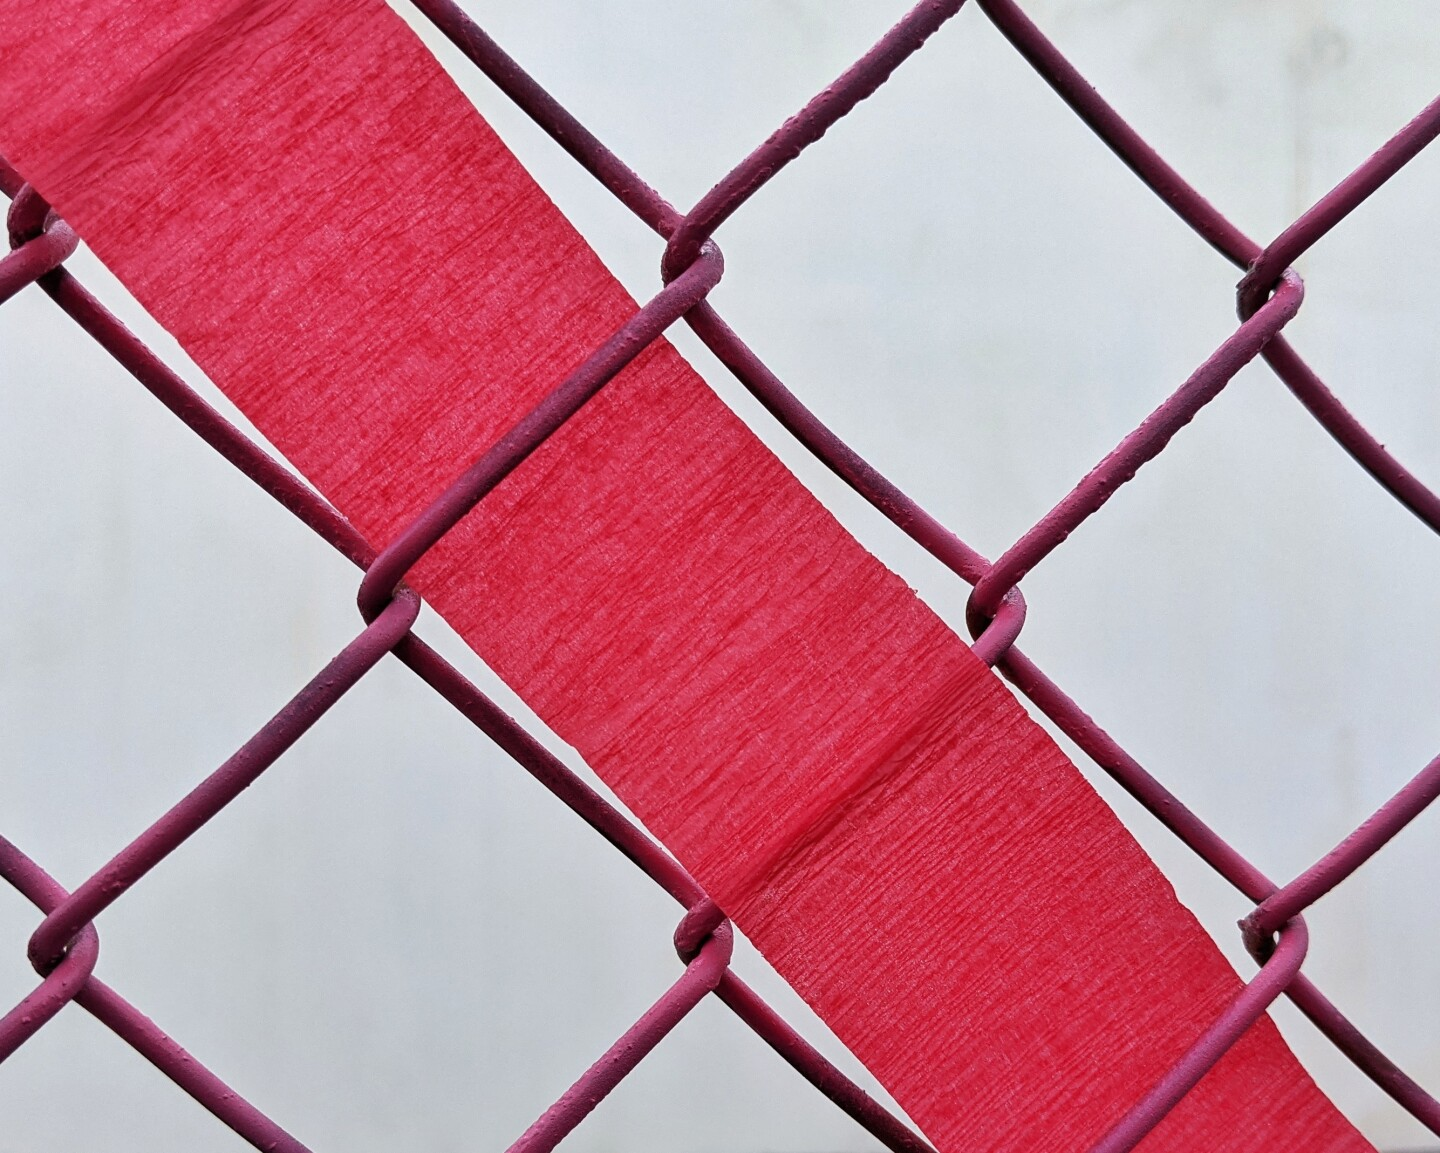 A piece of red streamer paper is woven through a fence.